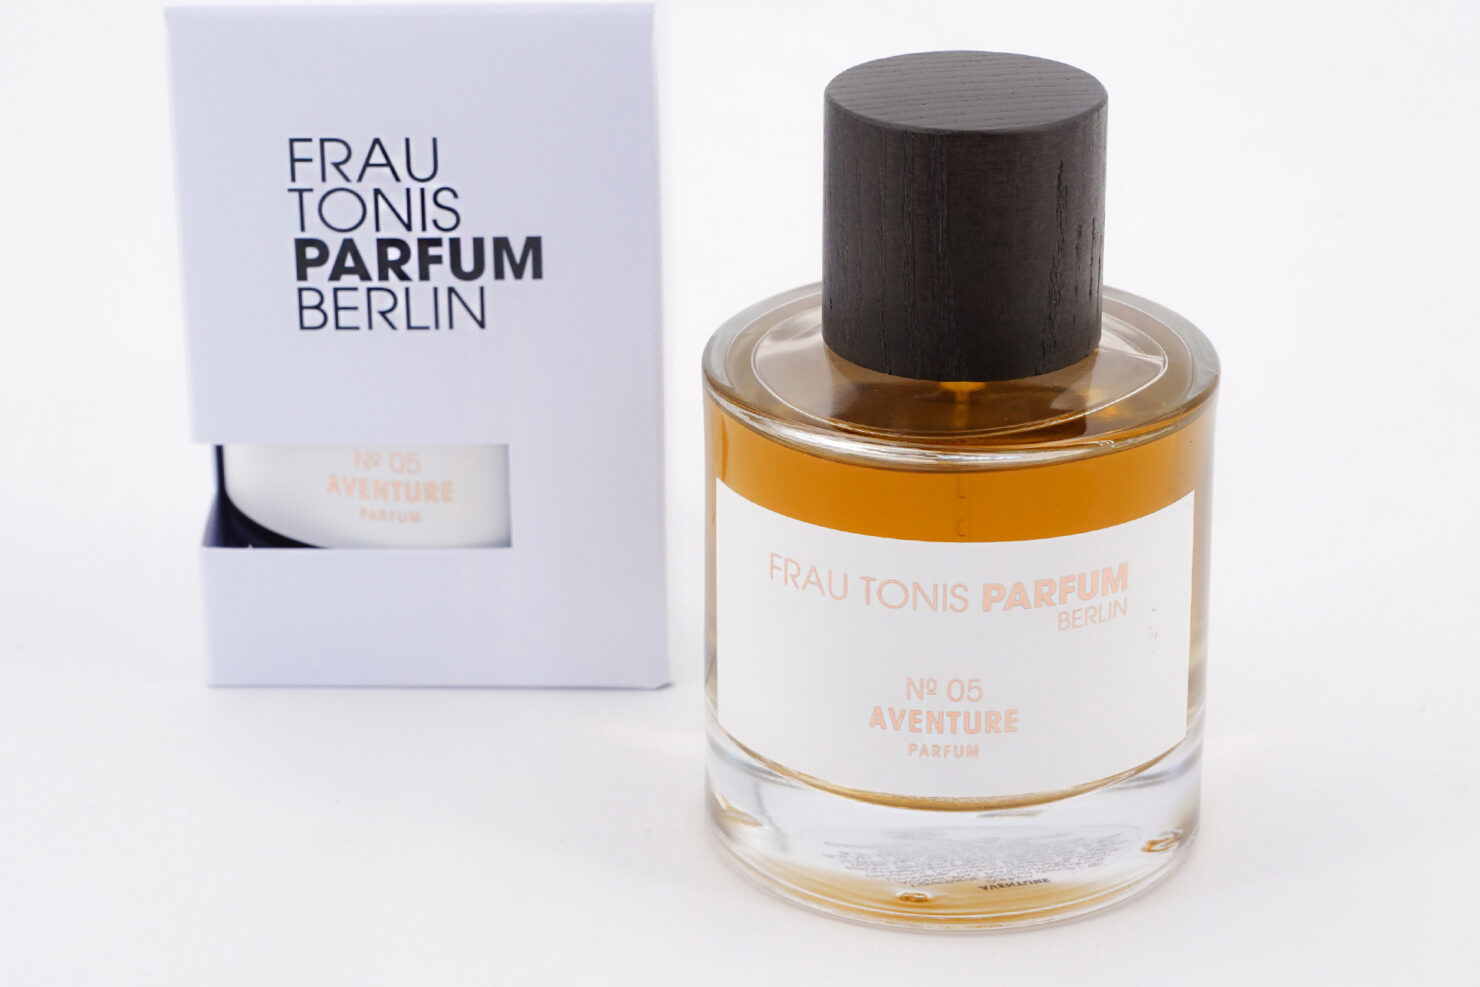 ADVENTURE PARFUM N°05 50-100 ML - FRAU TONIS BERLIN